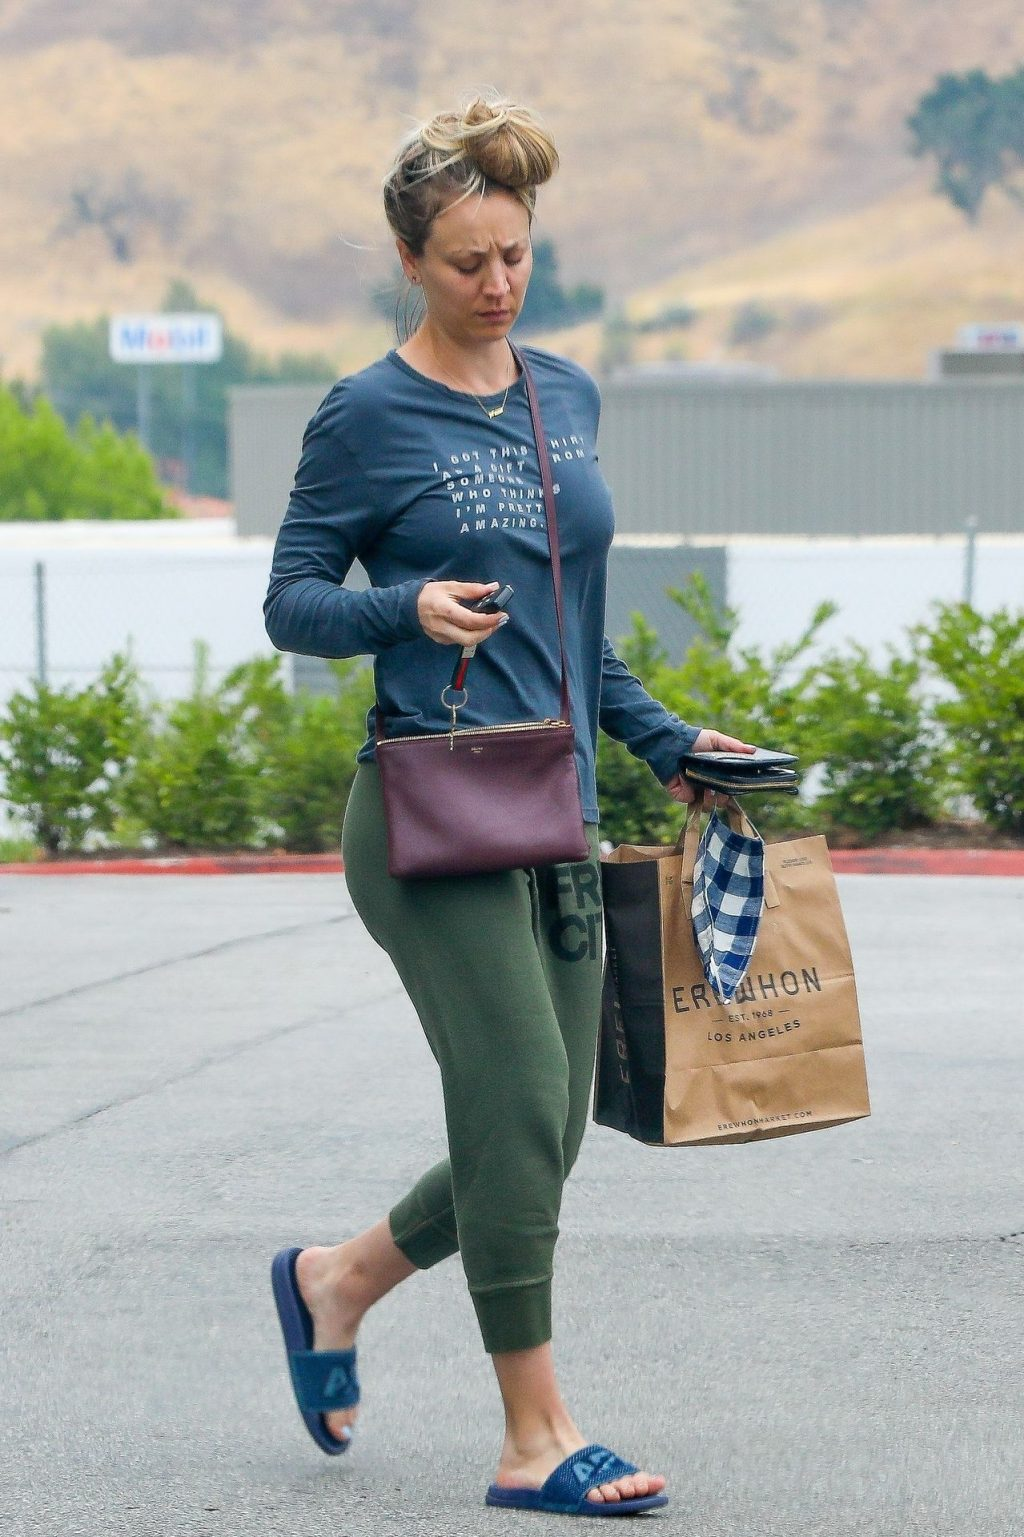 Kaley Cuoco Appears to Have a Bad Hair Day While Grocery Shopping (19 Photos)